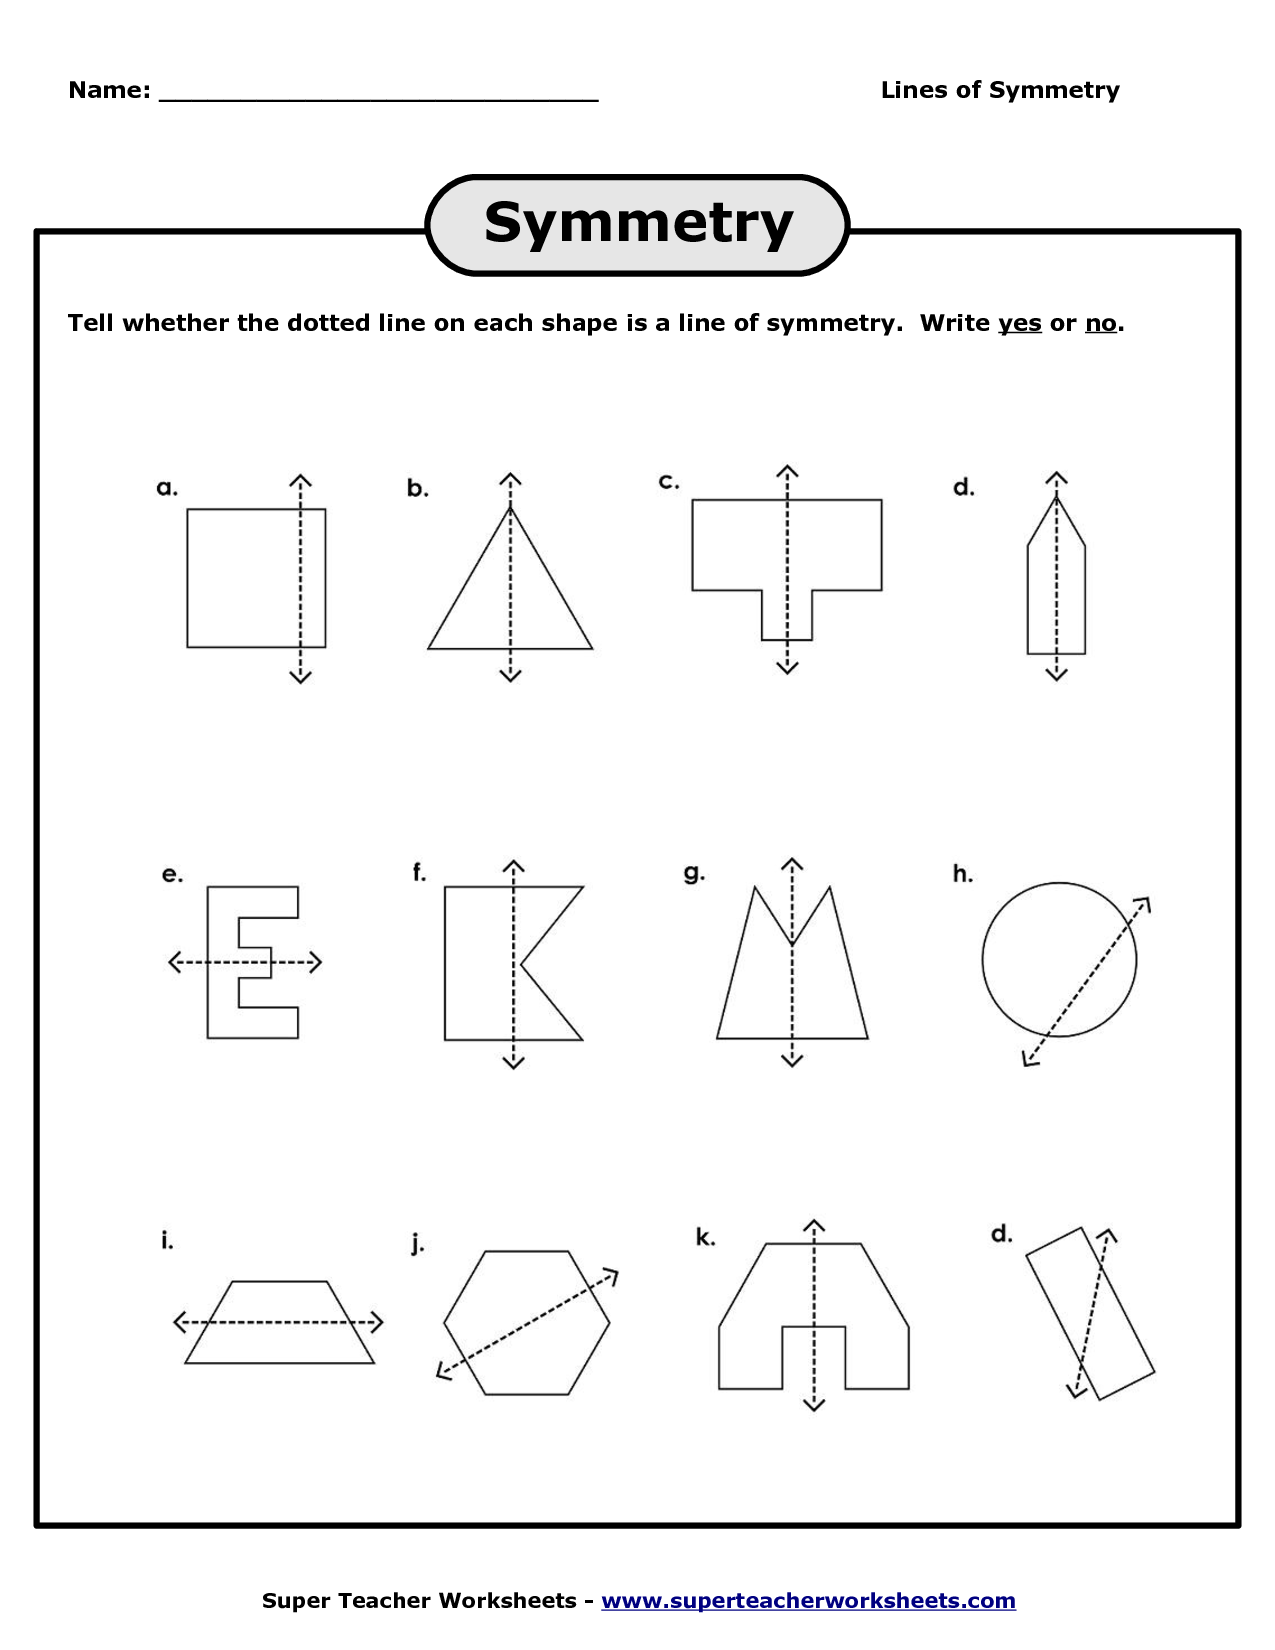 lines of symmetry worksheets lines of symmetry worksheet pdf checklist pinterest. Black Bedroom Furniture Sets. Home Design Ideas